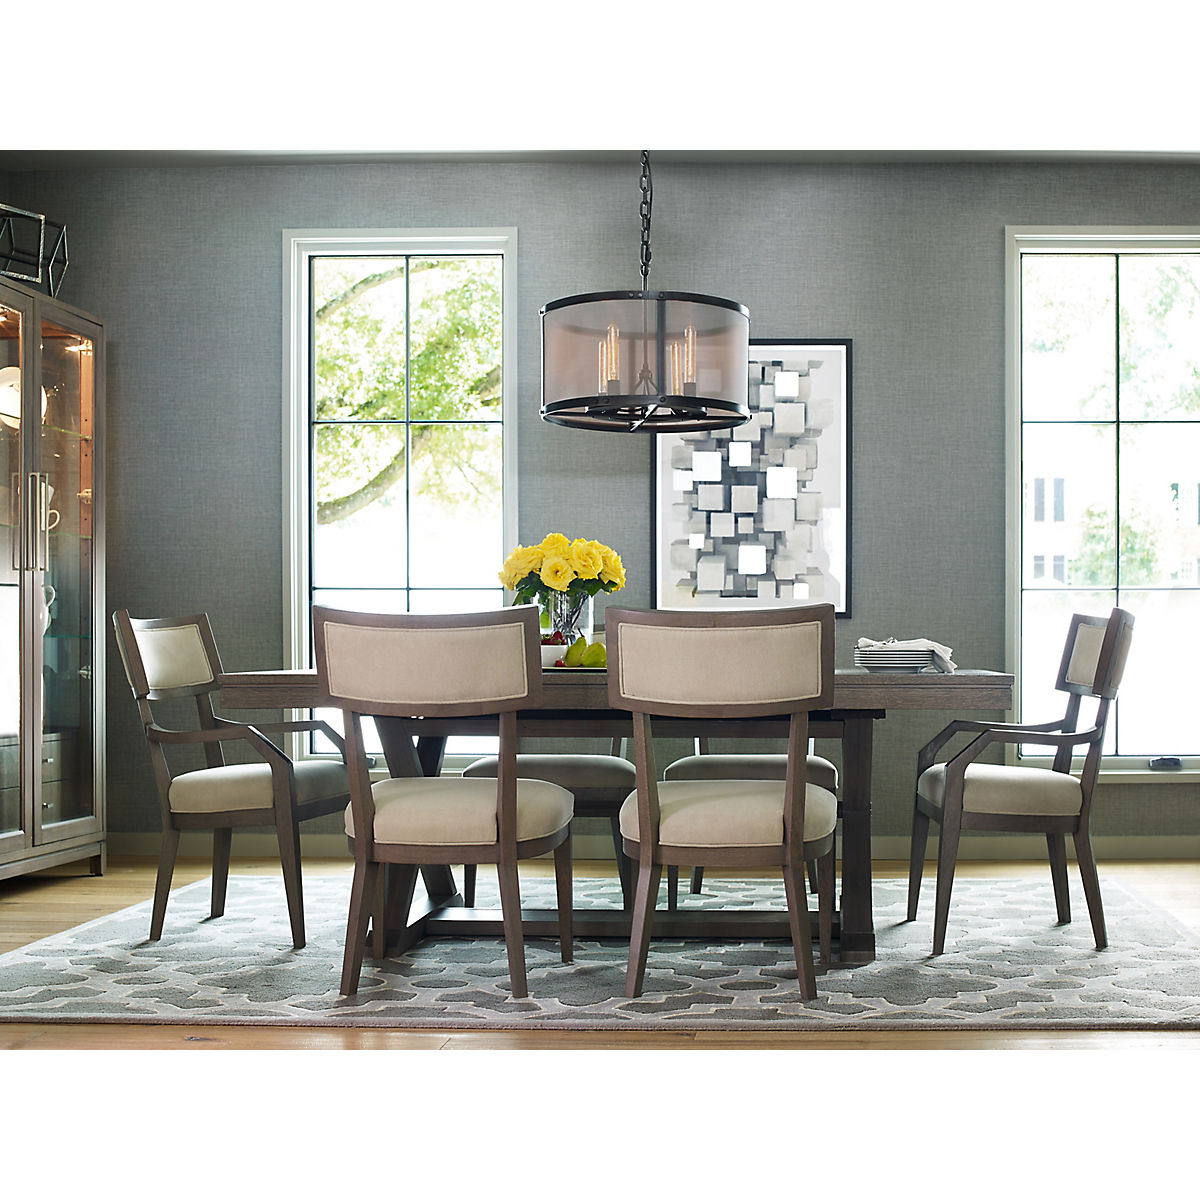 Tremendous Rachael Ray Home Highline 5 Piece Dining Room Set Star Furniture Home Interior And Landscaping Transignezvosmurscom